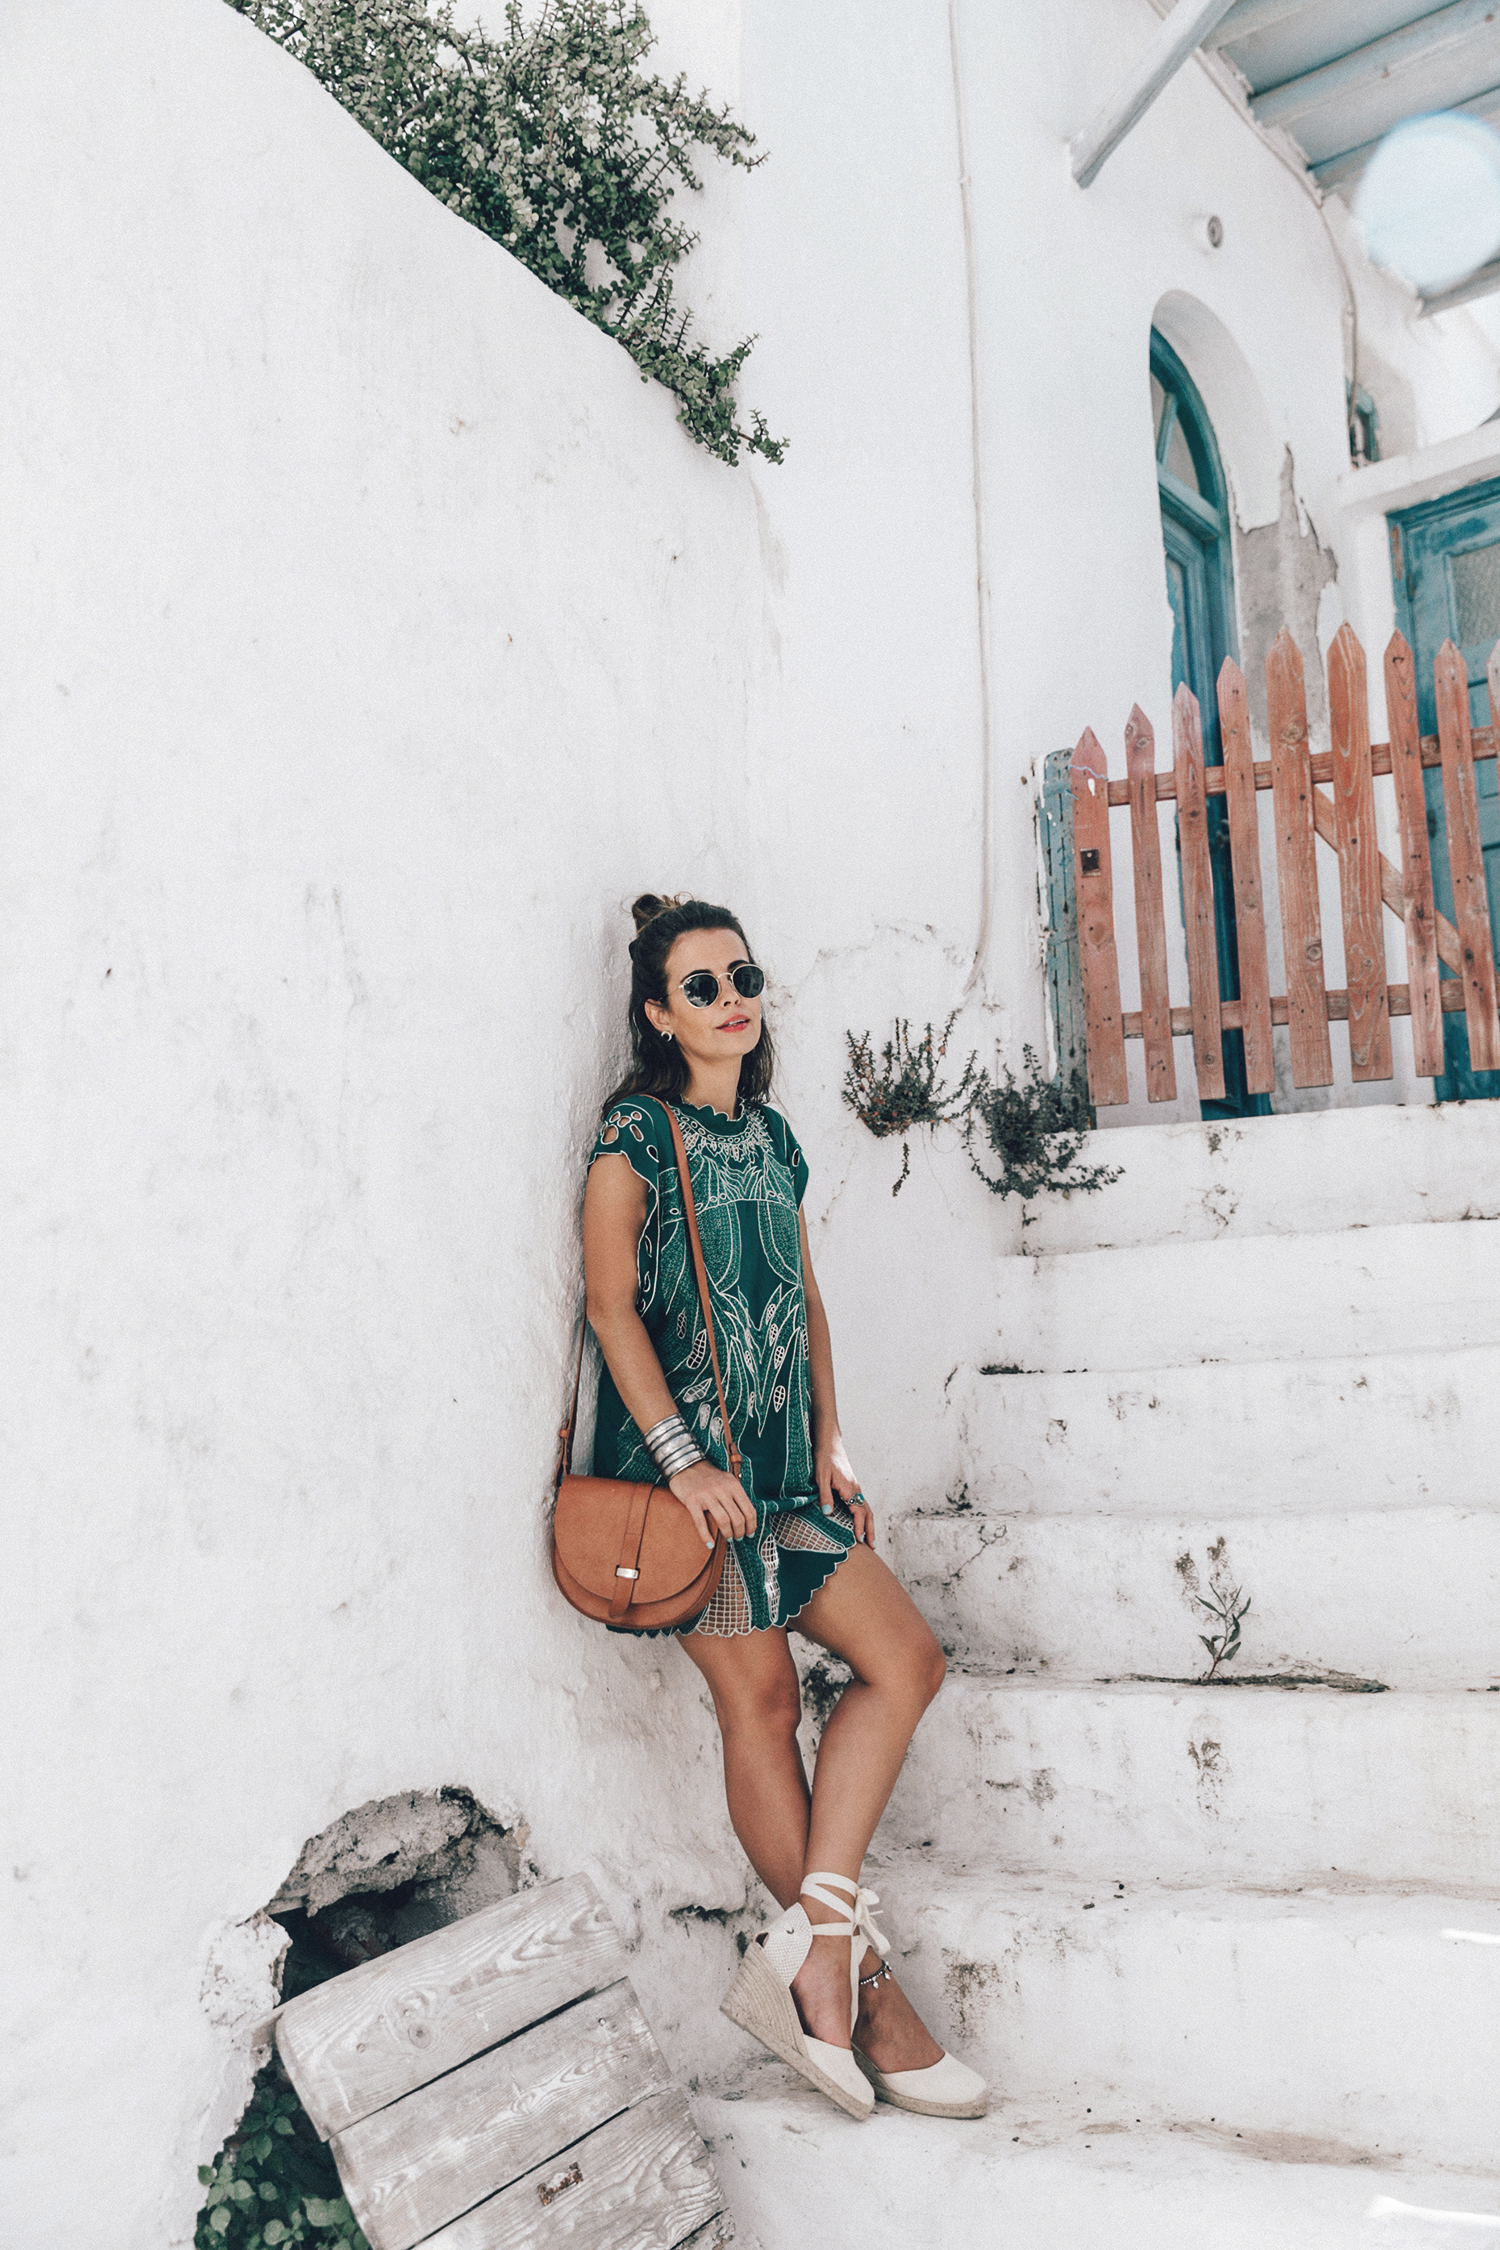 Tularosa_Dress-Soludos_Escapes-Soludos_Espadrilles-Sezane_Bag-Leather_Crossbody_Bag-Boho_Outfit-Look-Ray_Ban-Street_Style-Mykonos-Greece-Collage_Vintage-12-Recuperado